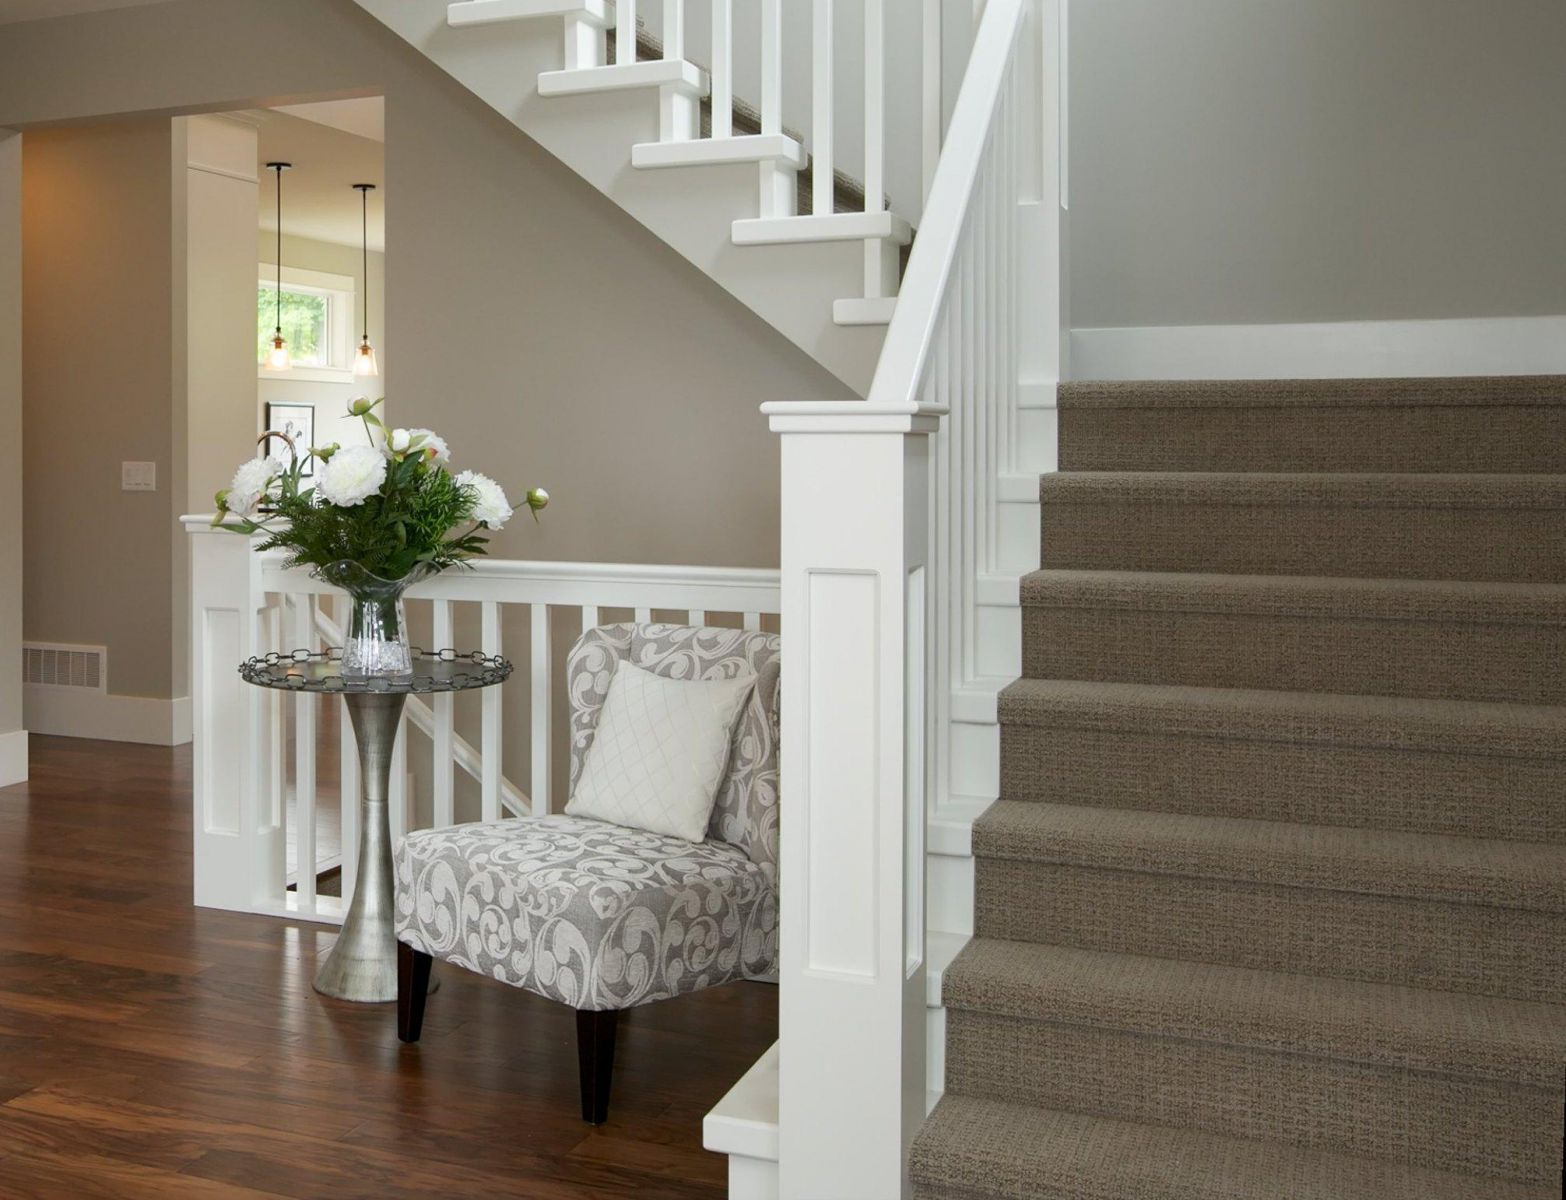 Entrance Foyer And Circulation In House : Styling tips for your foyer